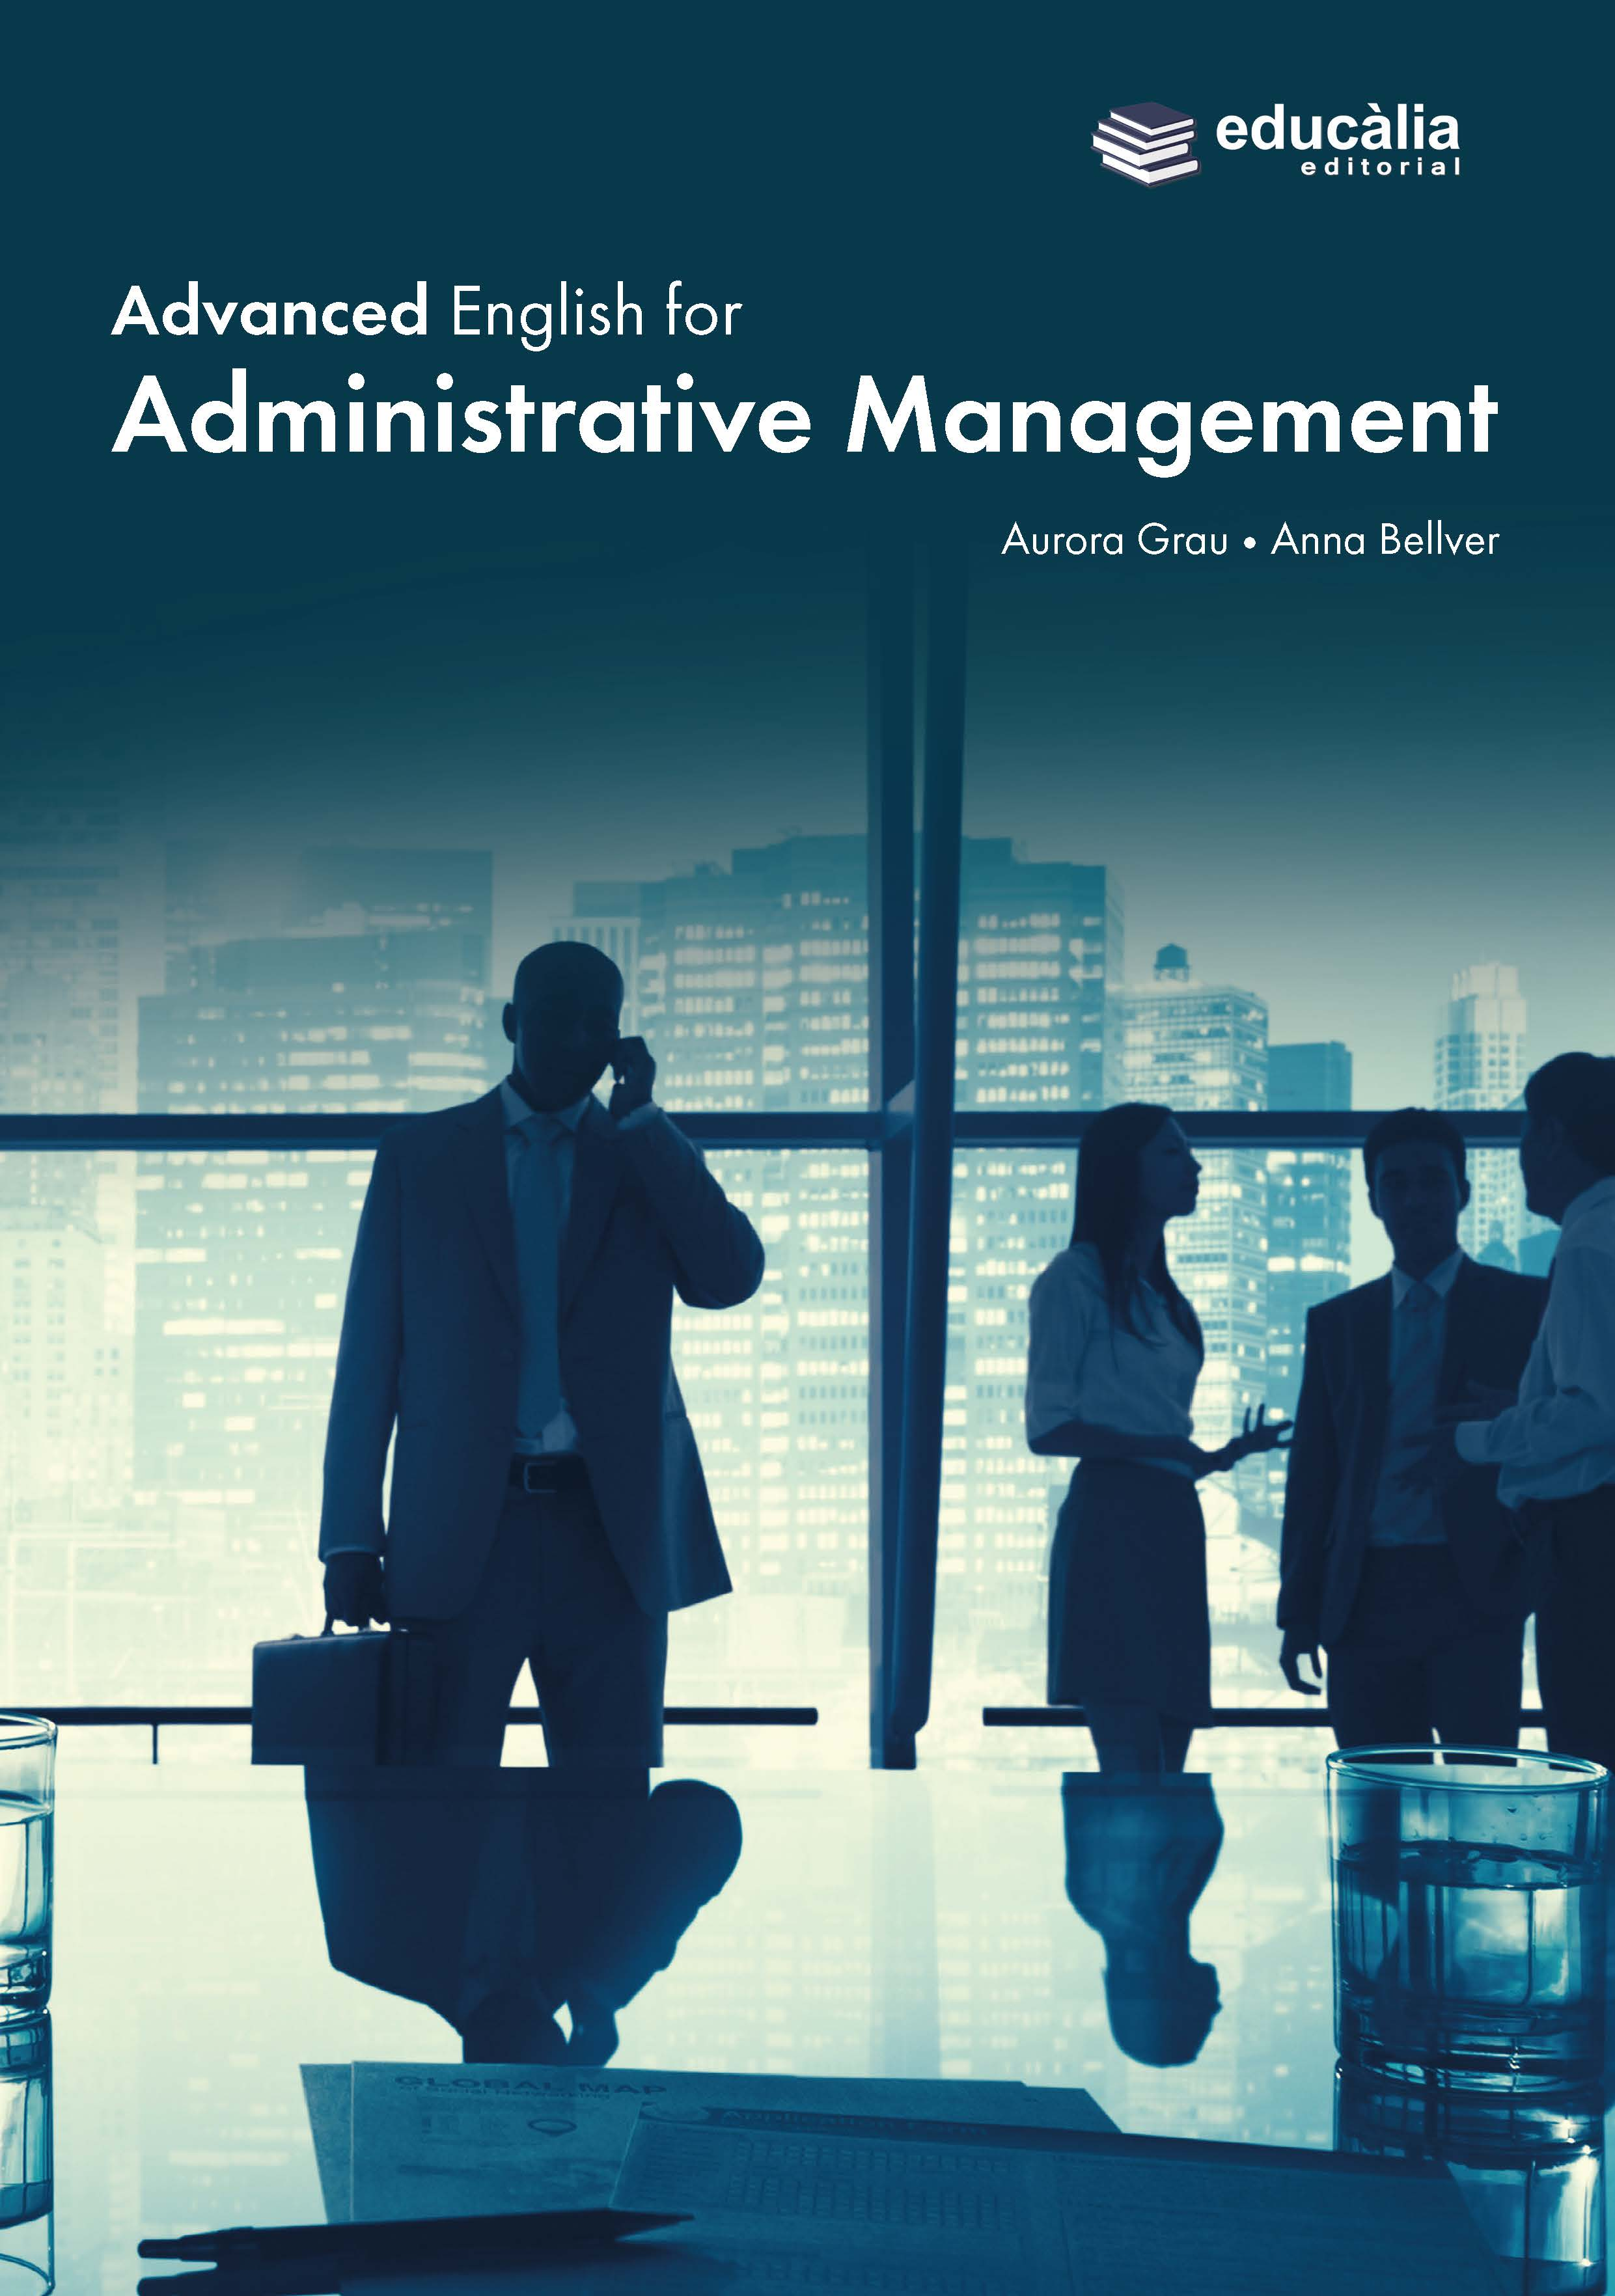 Advanced English for Administrative Management